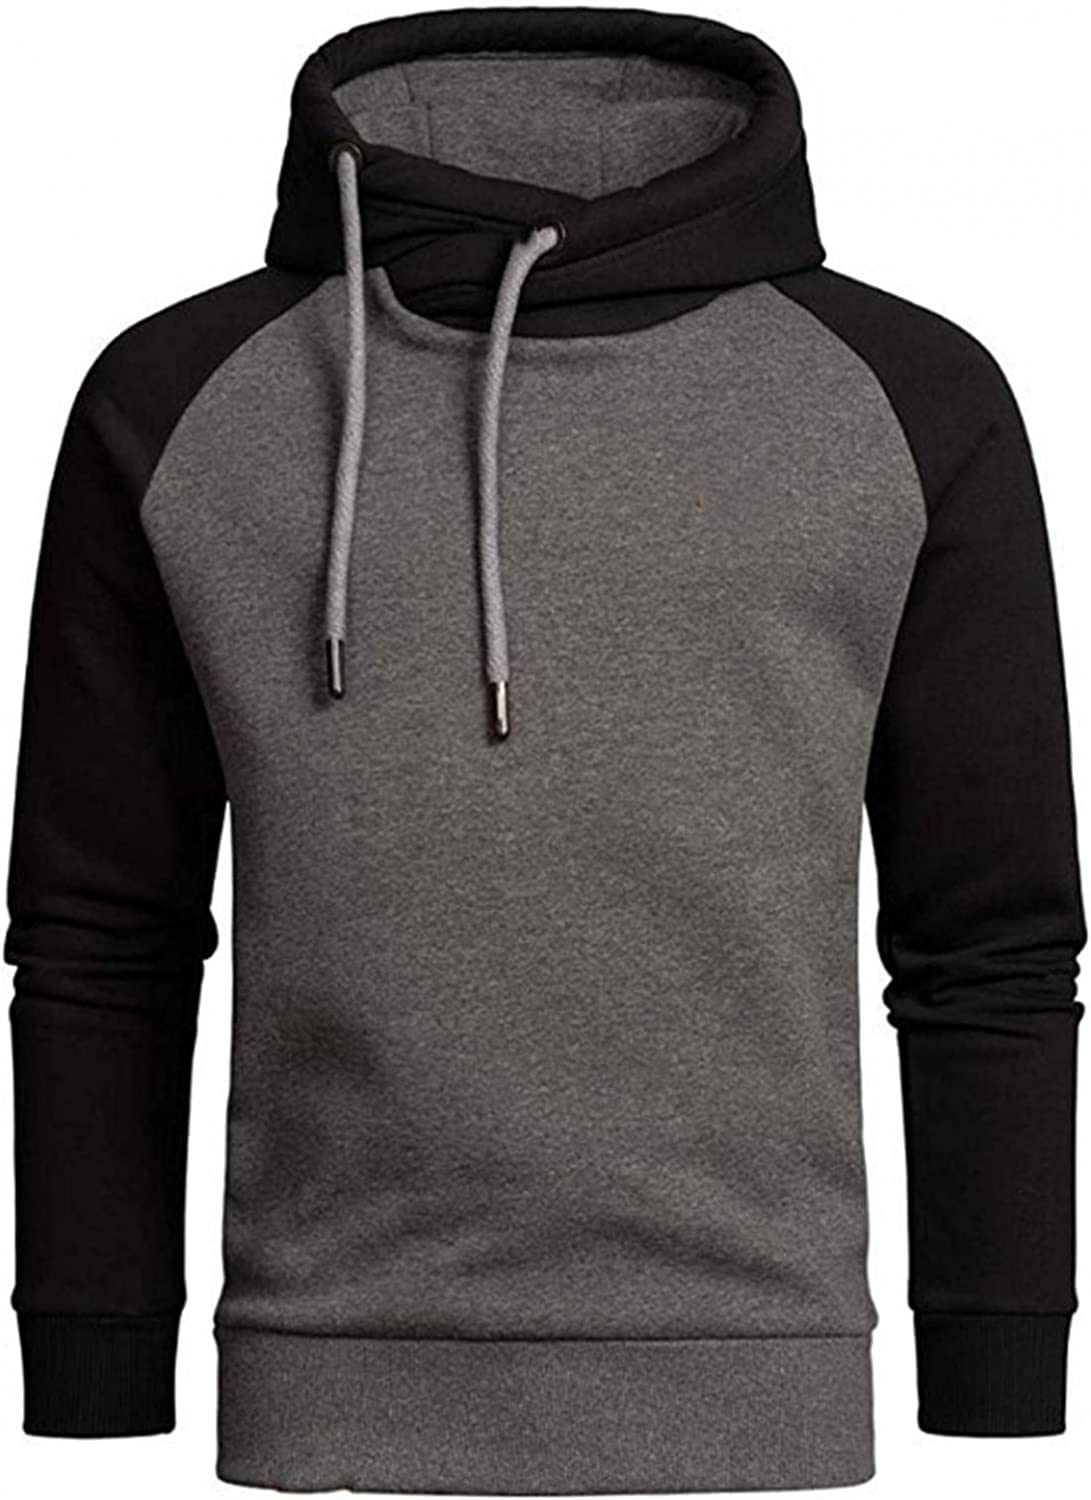 Aayomet Men's Hoodies Sweatshirts Patchwork Tops Long Sleeve Casual Athletic Hooded Pullover Shirts Blouses for Men